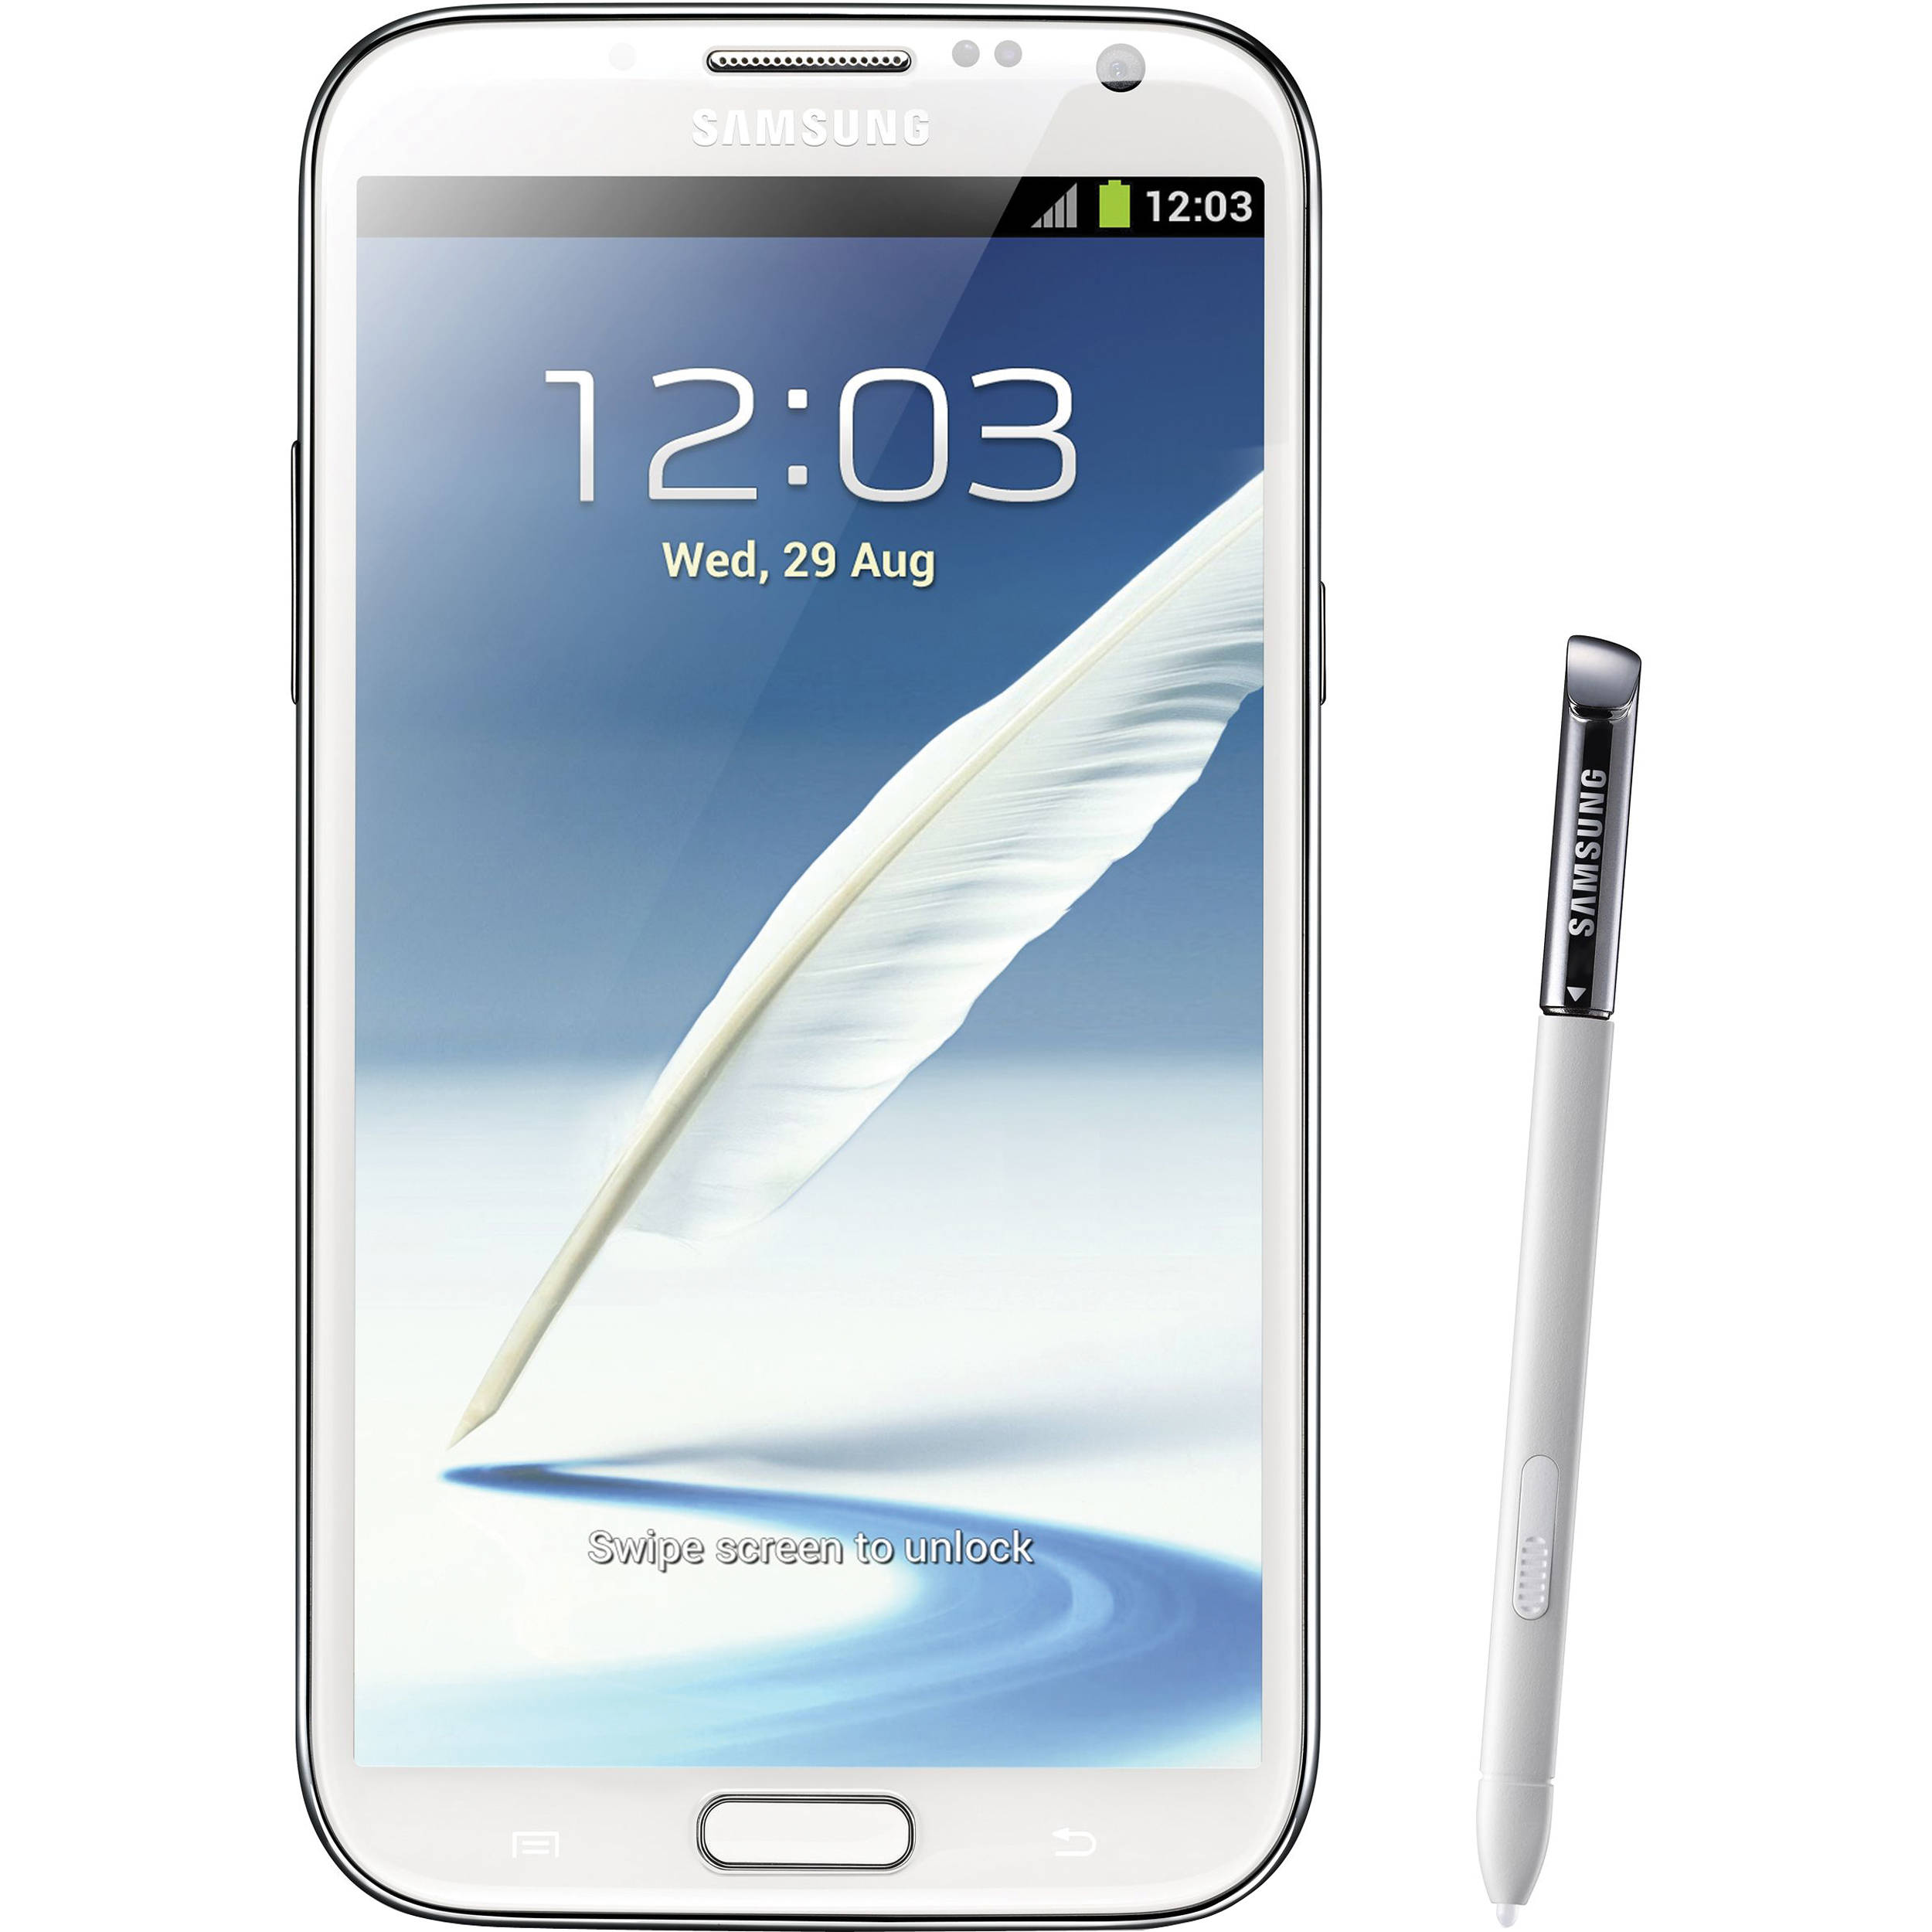 Samsung galaxy note 2 sgh i317 16gb att branded i317 white samsung galaxy note 2 sgh i317 16gb att branded smartphone unlocked white ccuart Image collections